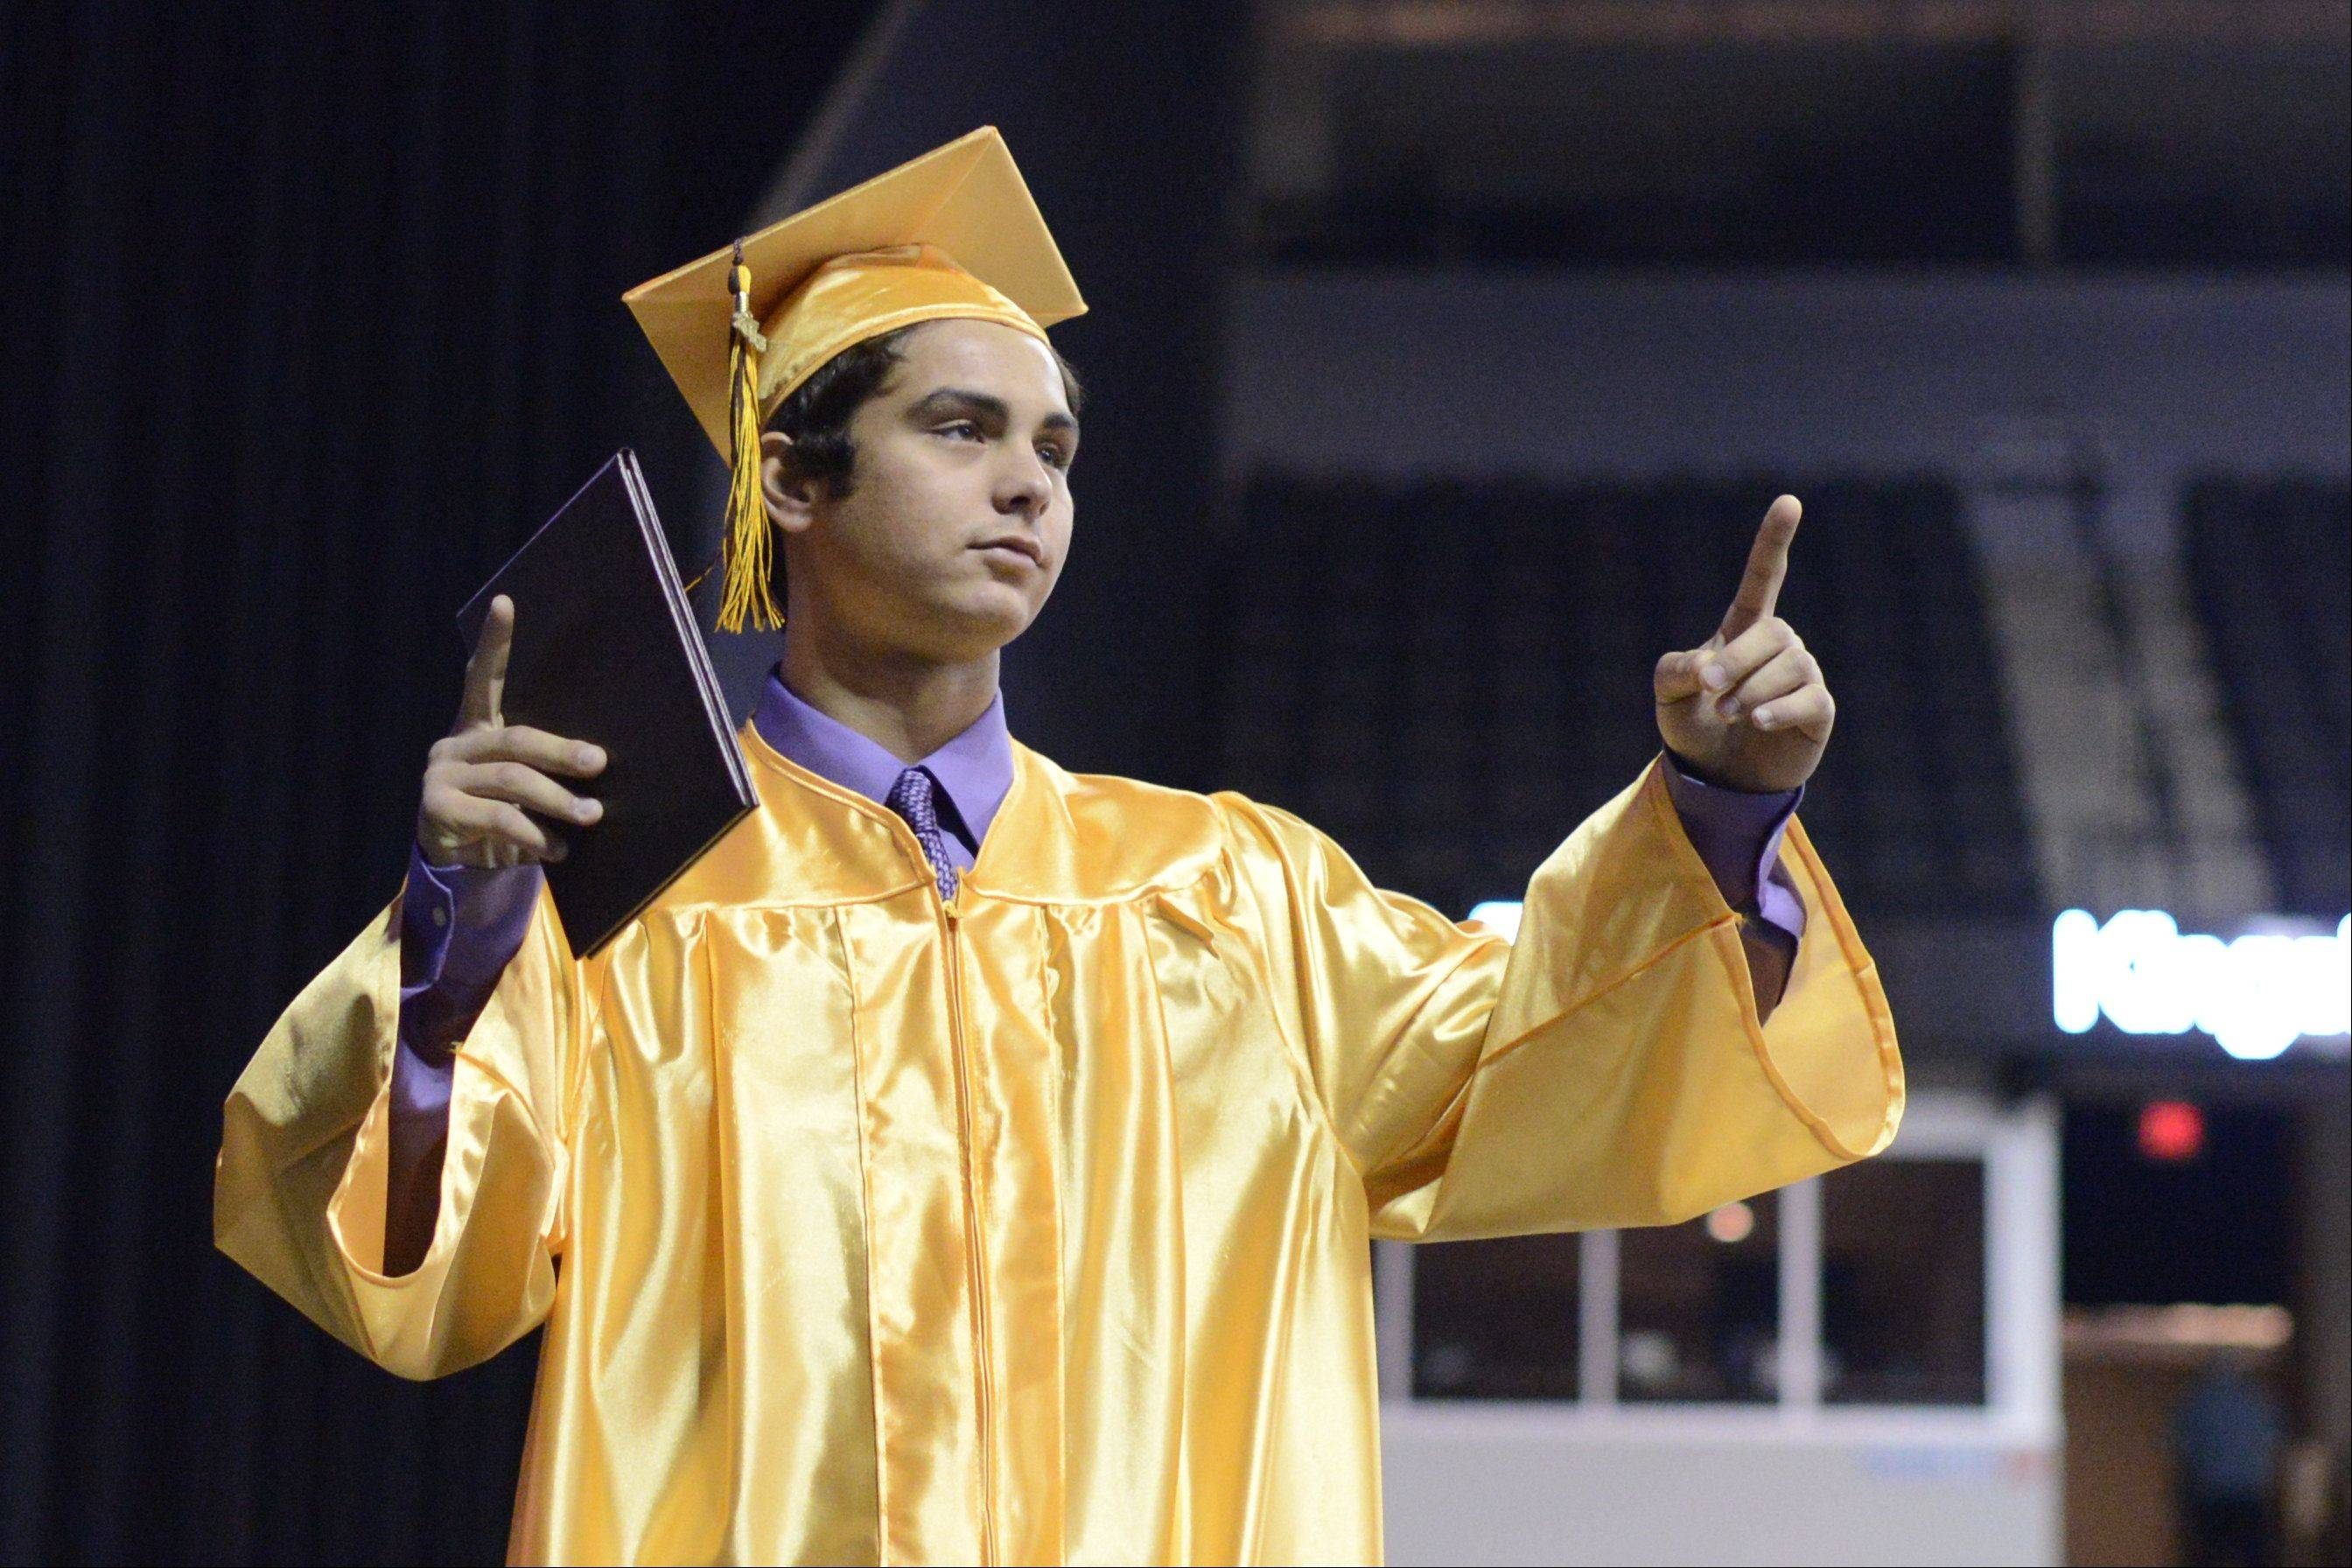 Images from the Jacobs High School graduation, Saturday, May 18, 2013 at the Sears Centre in Hoffman Estates.